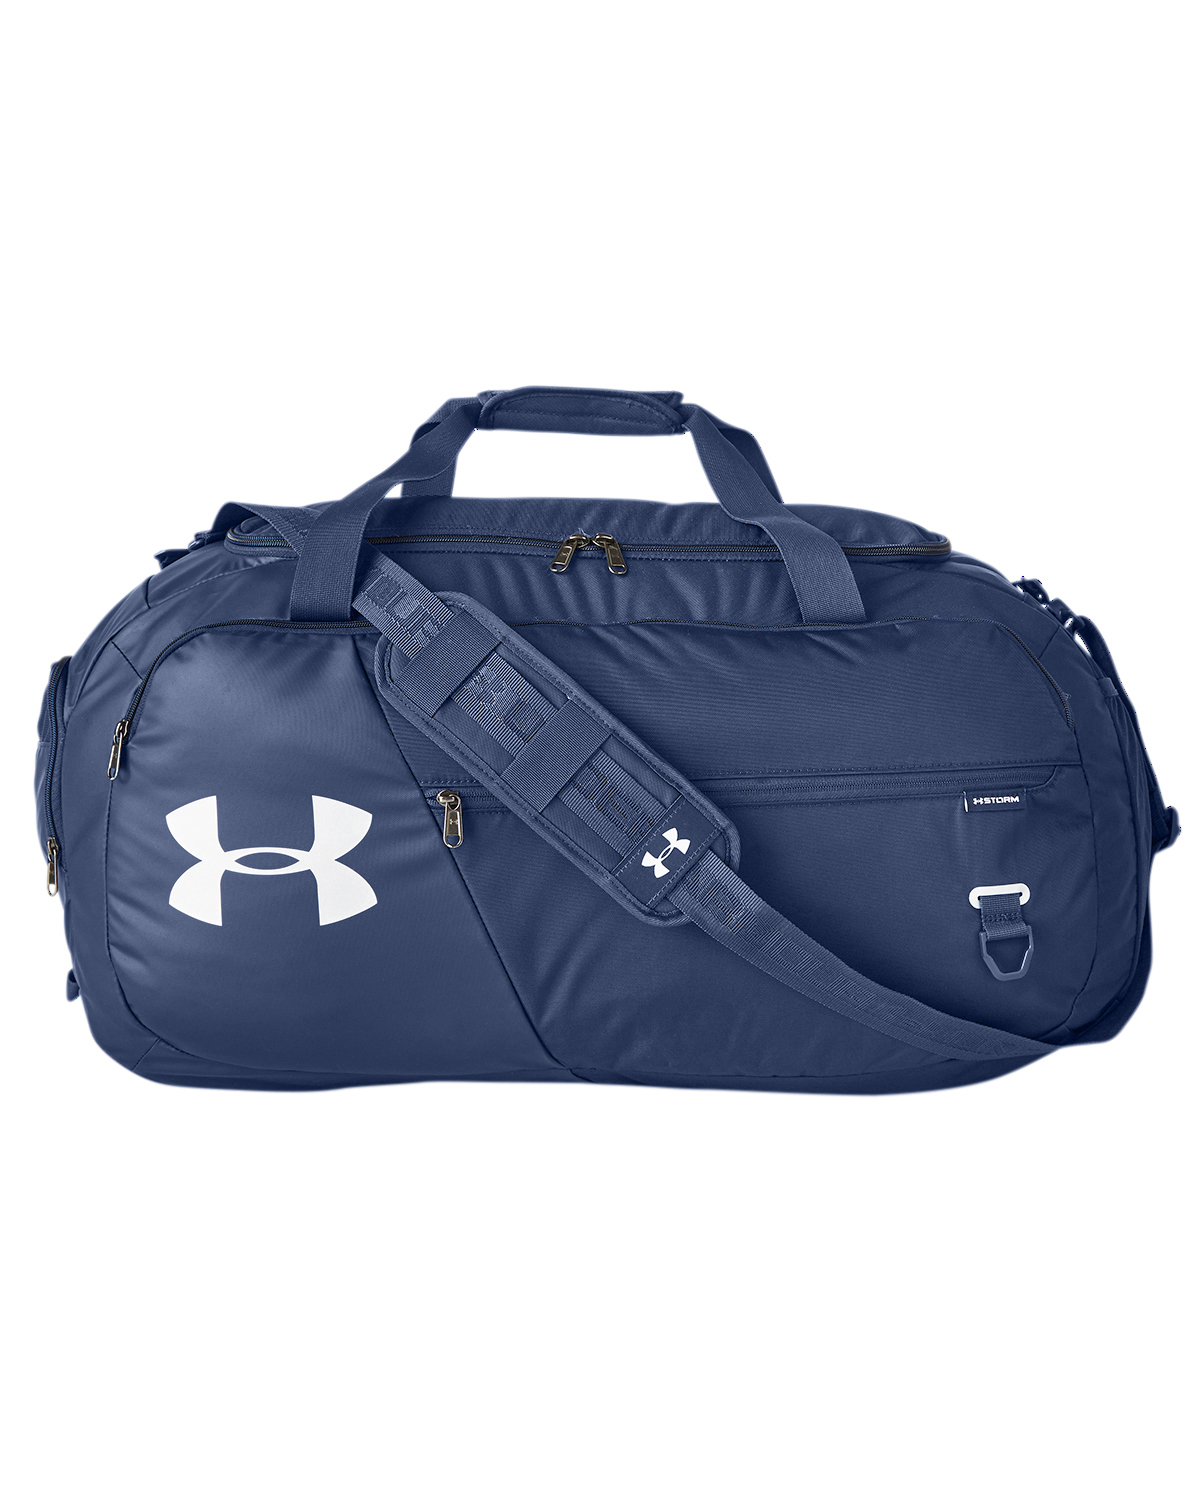 Under Armour Undeniable Large Duffle